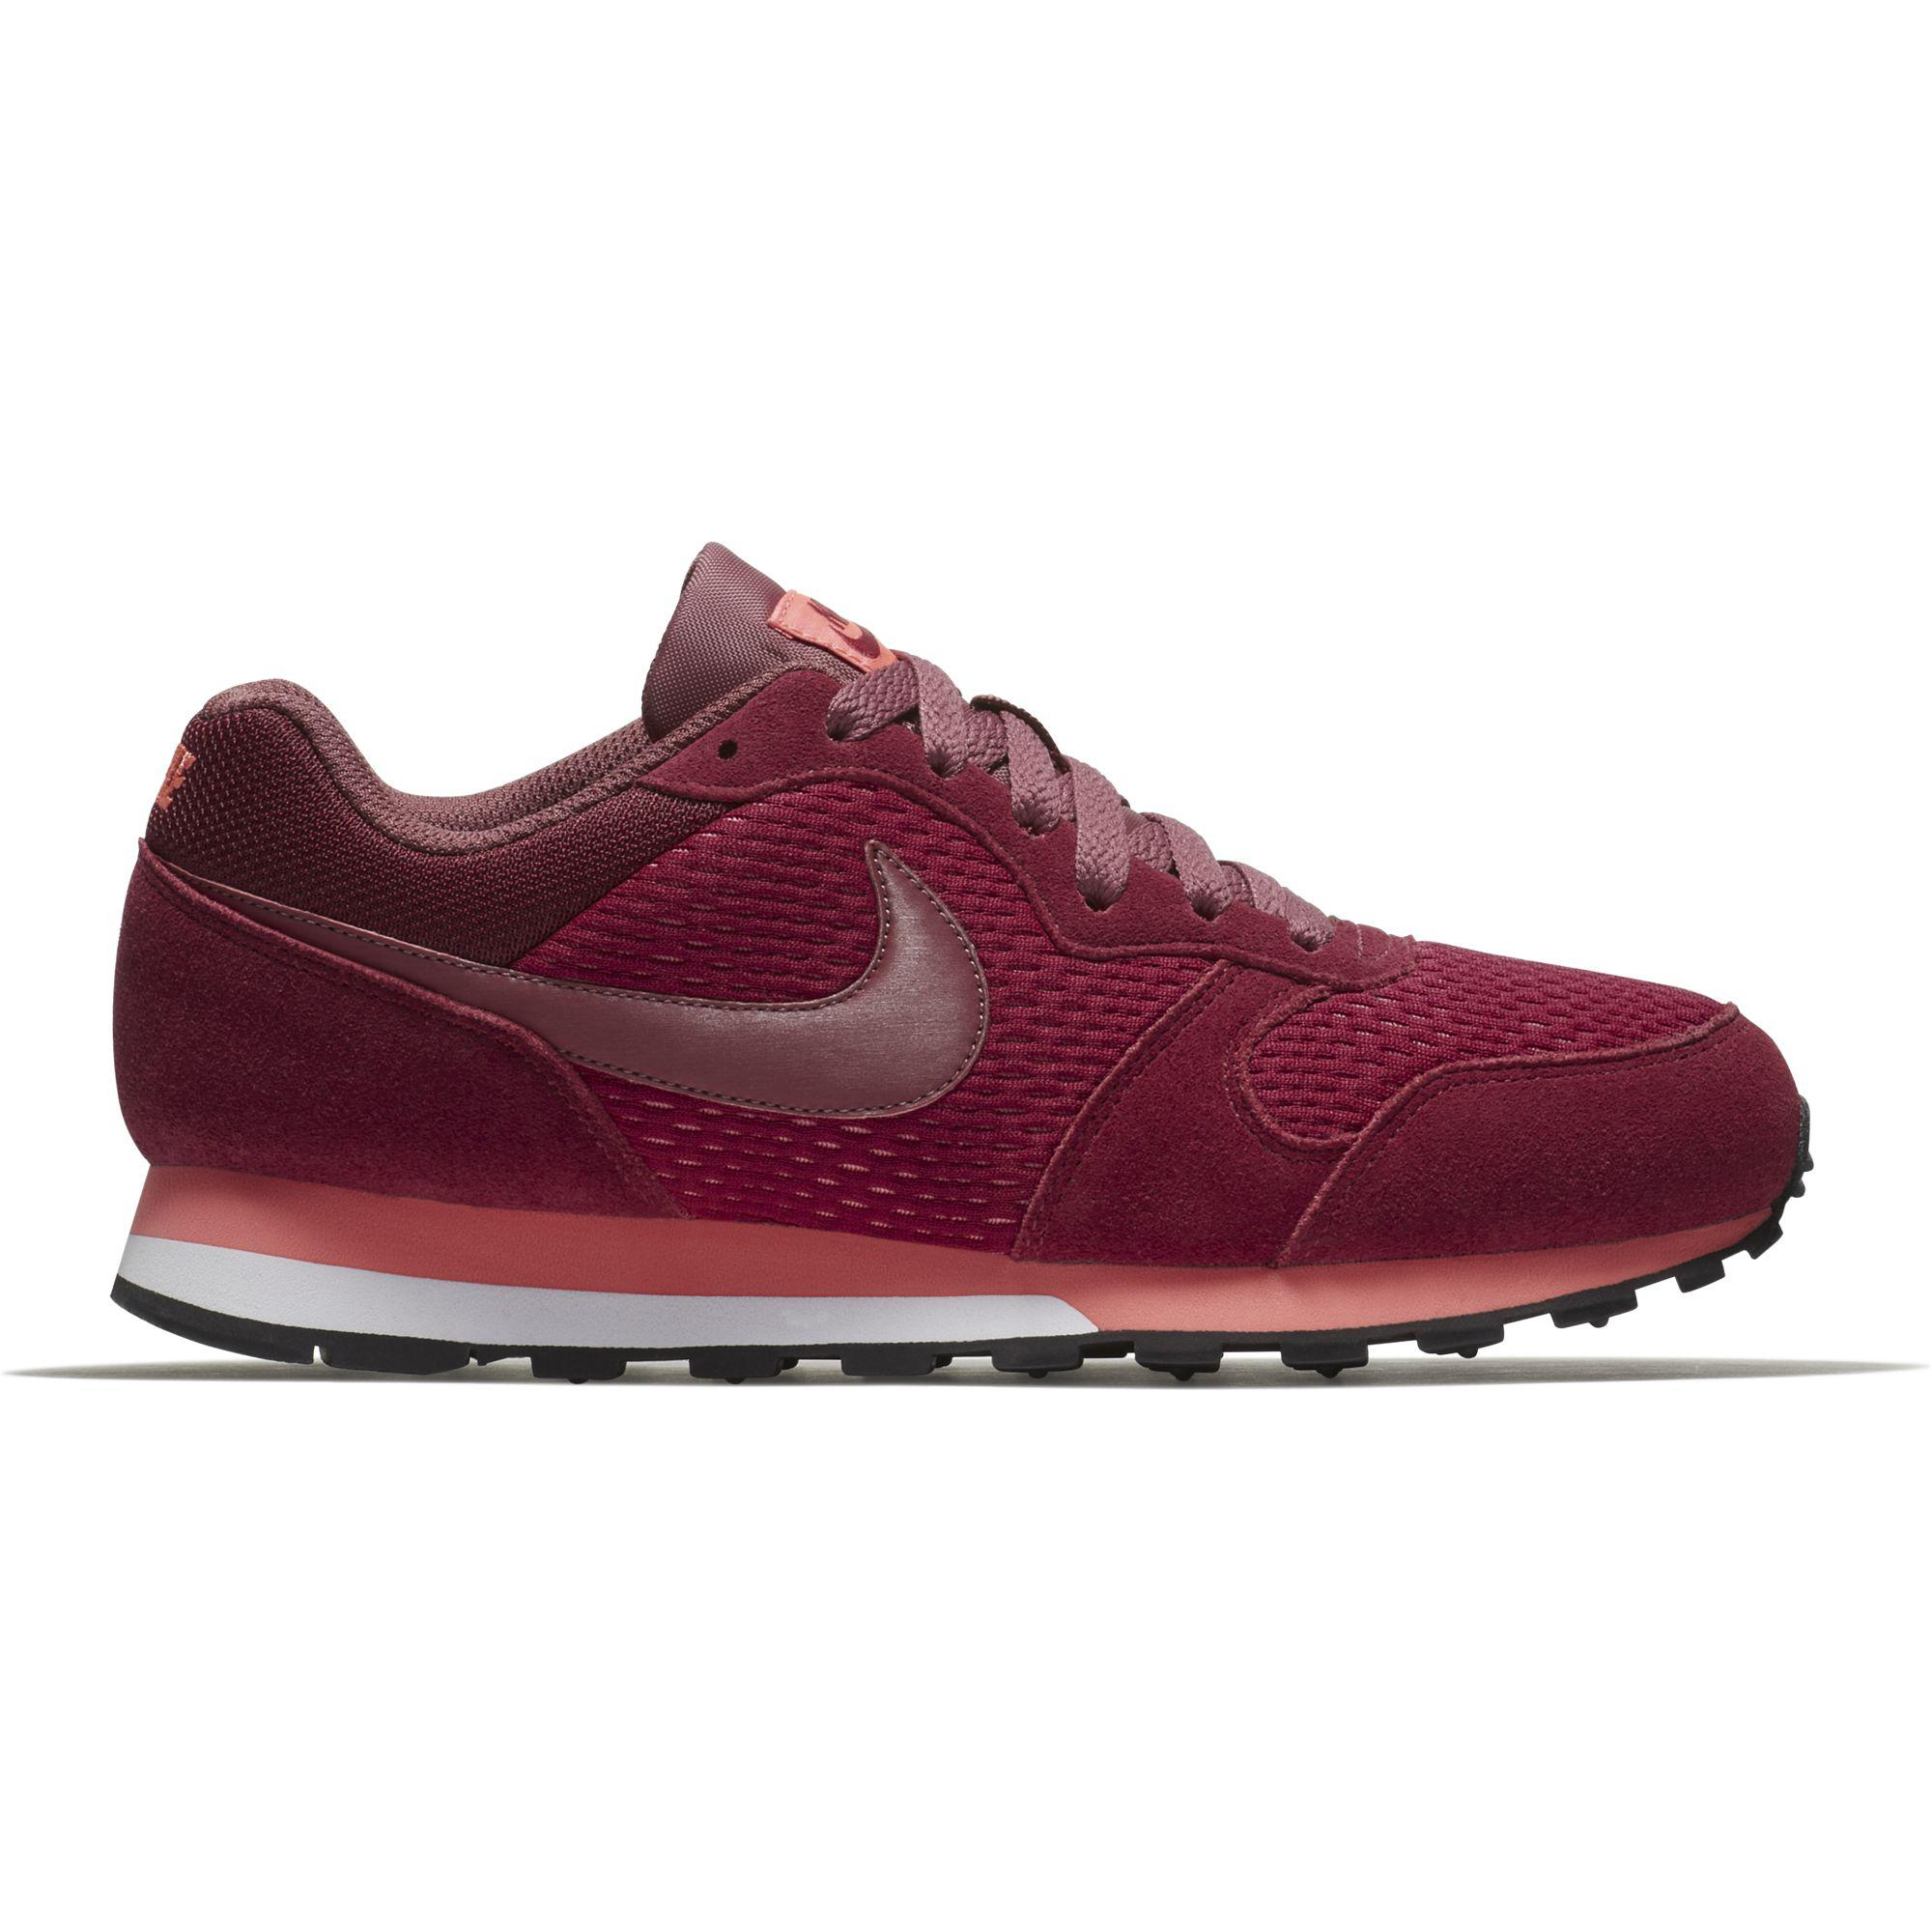 bf429ed7f749c Nike Womens MD Runner 2 Running Shoes - Noble Red - Tennisnuts.com